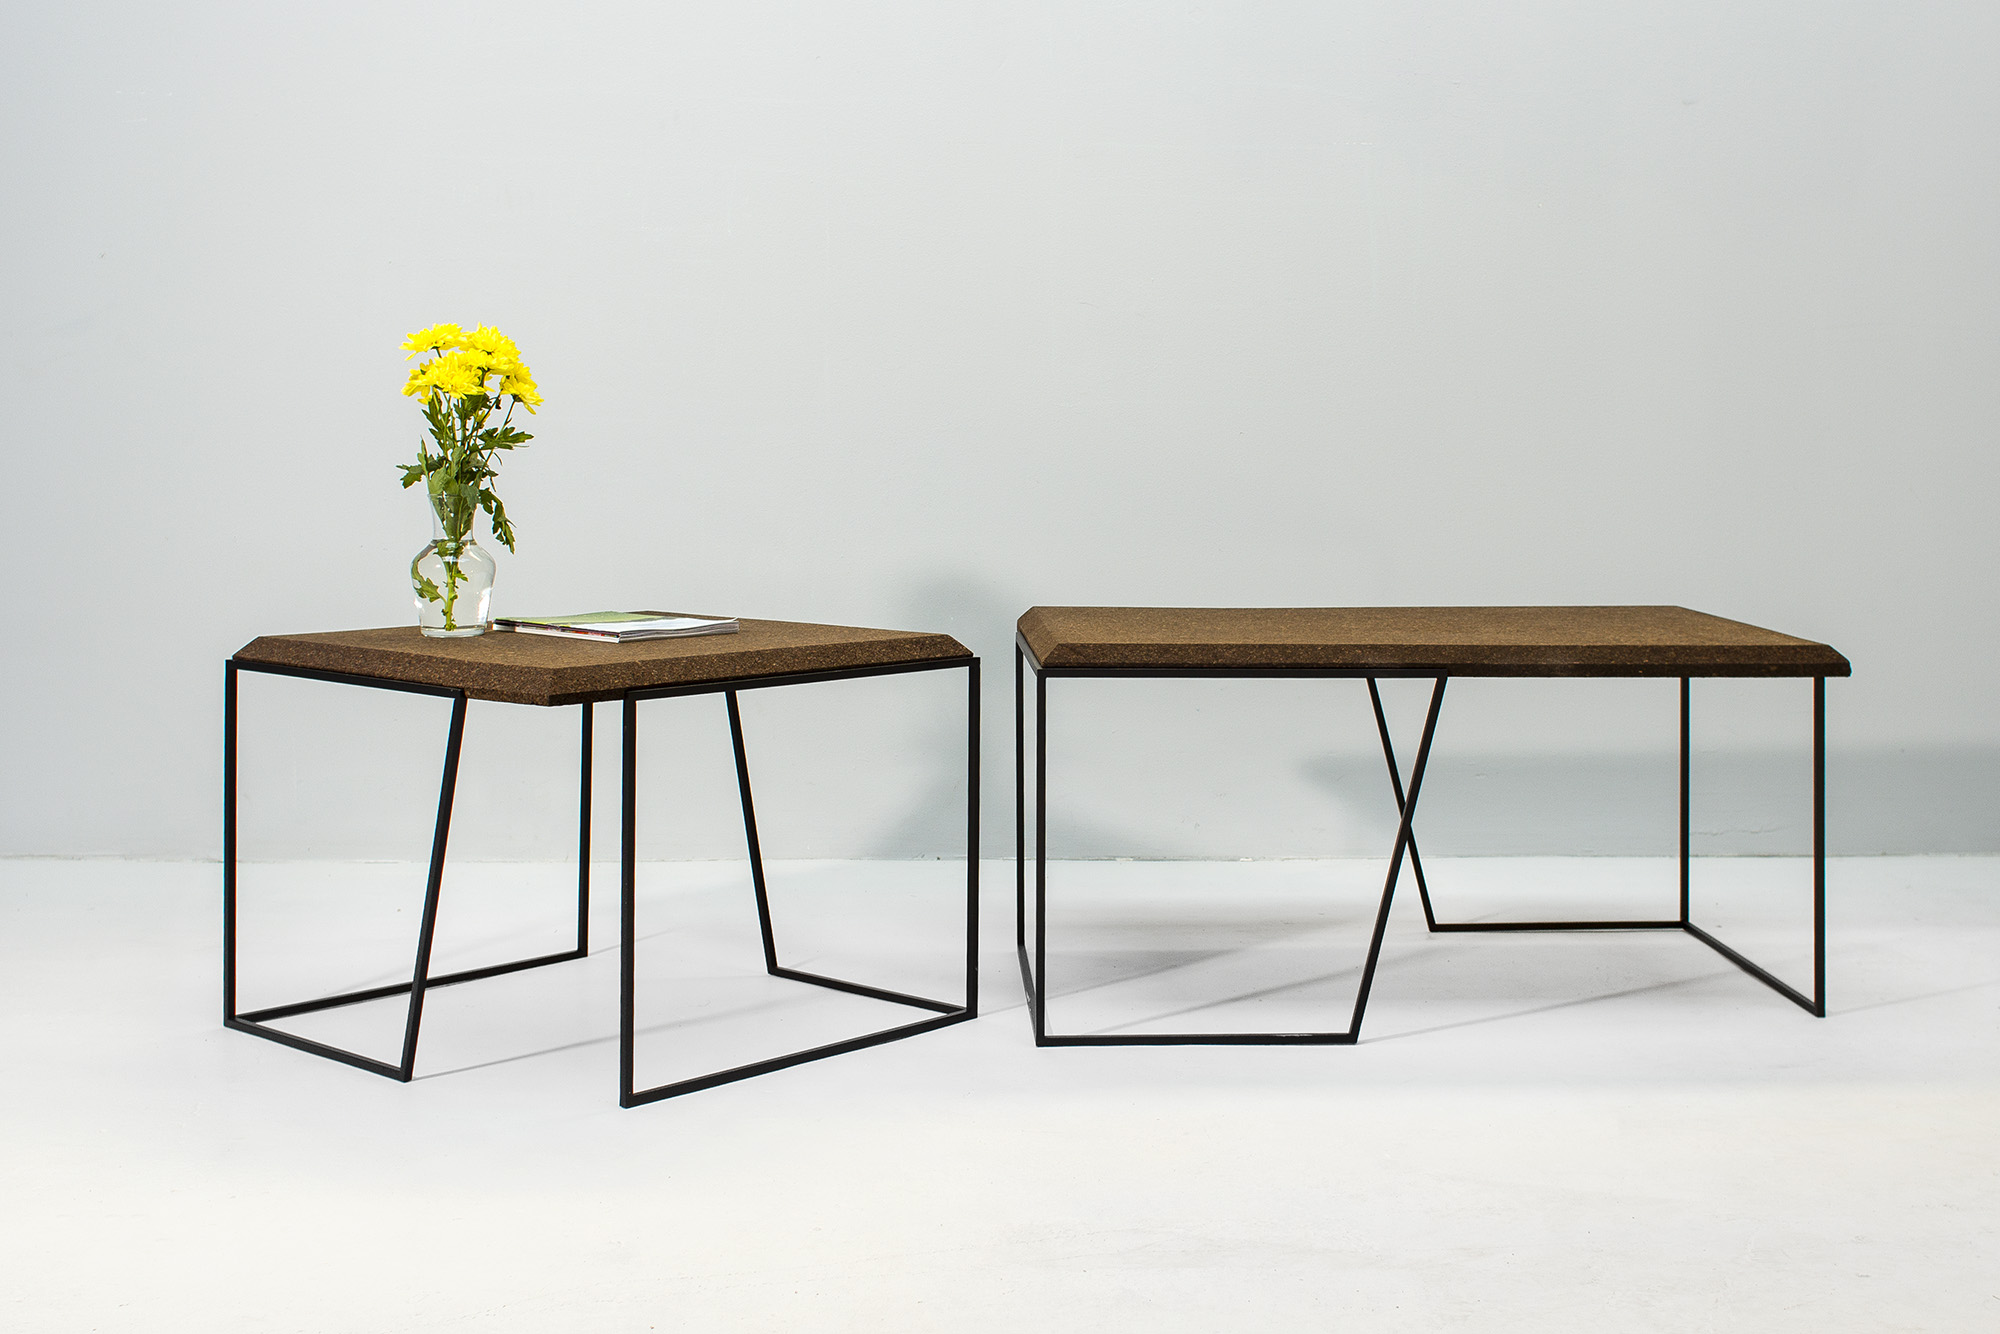 low-Galula-Grão-tables-collection-dark-cork-black-09.jpg